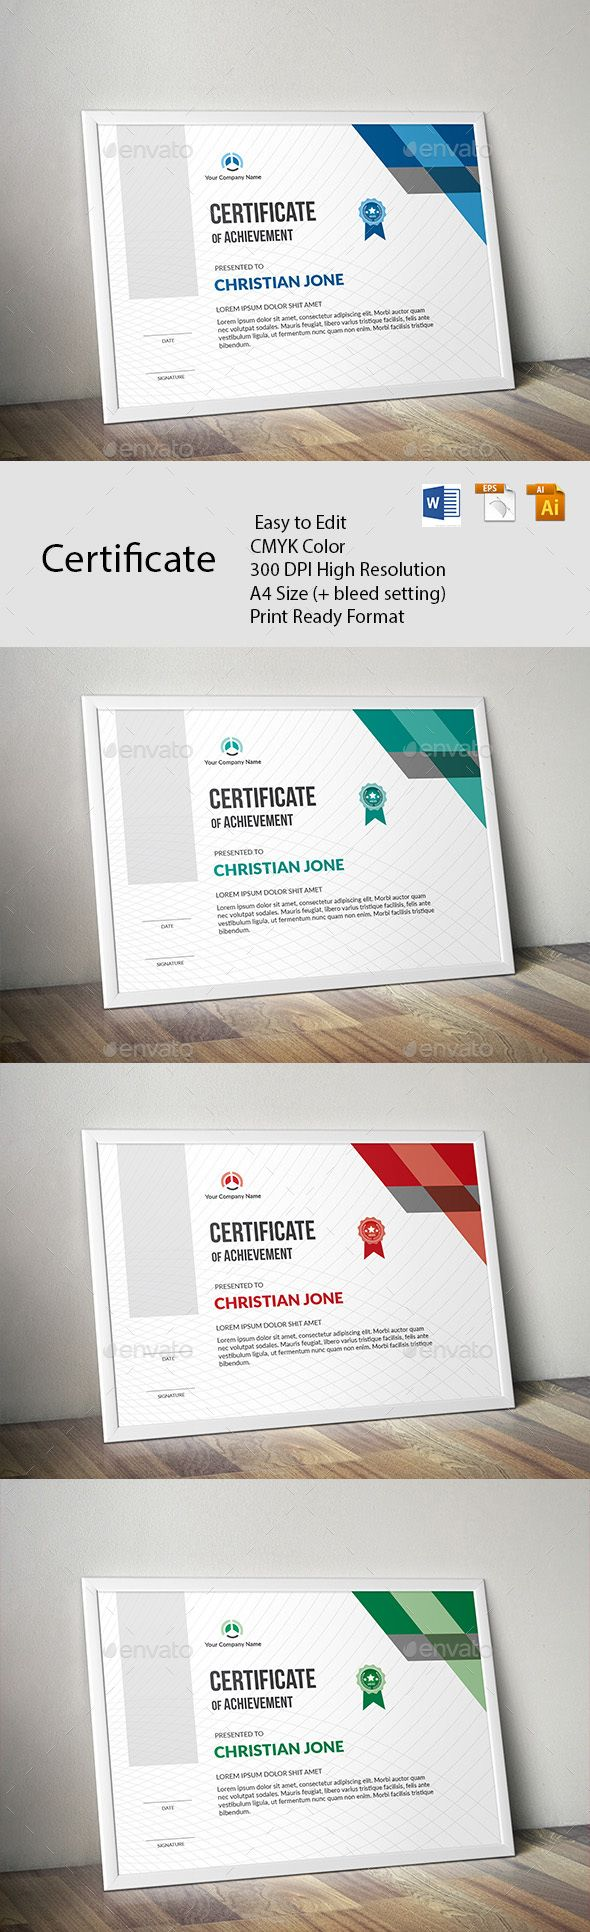 Certificate A GREAT CREATIVE CERTIFICATE TEMPLATE FOR CREATIVE PERSON. FEATURES:      Easy to Edit     CMYK Color     300 DPI High Resolution     A4 Size (+ bleed setting)     Print Ready Format     Free Fonts      FILES INCLUDES:     8 Ai, EPS & 4 word File      FONTS USED: